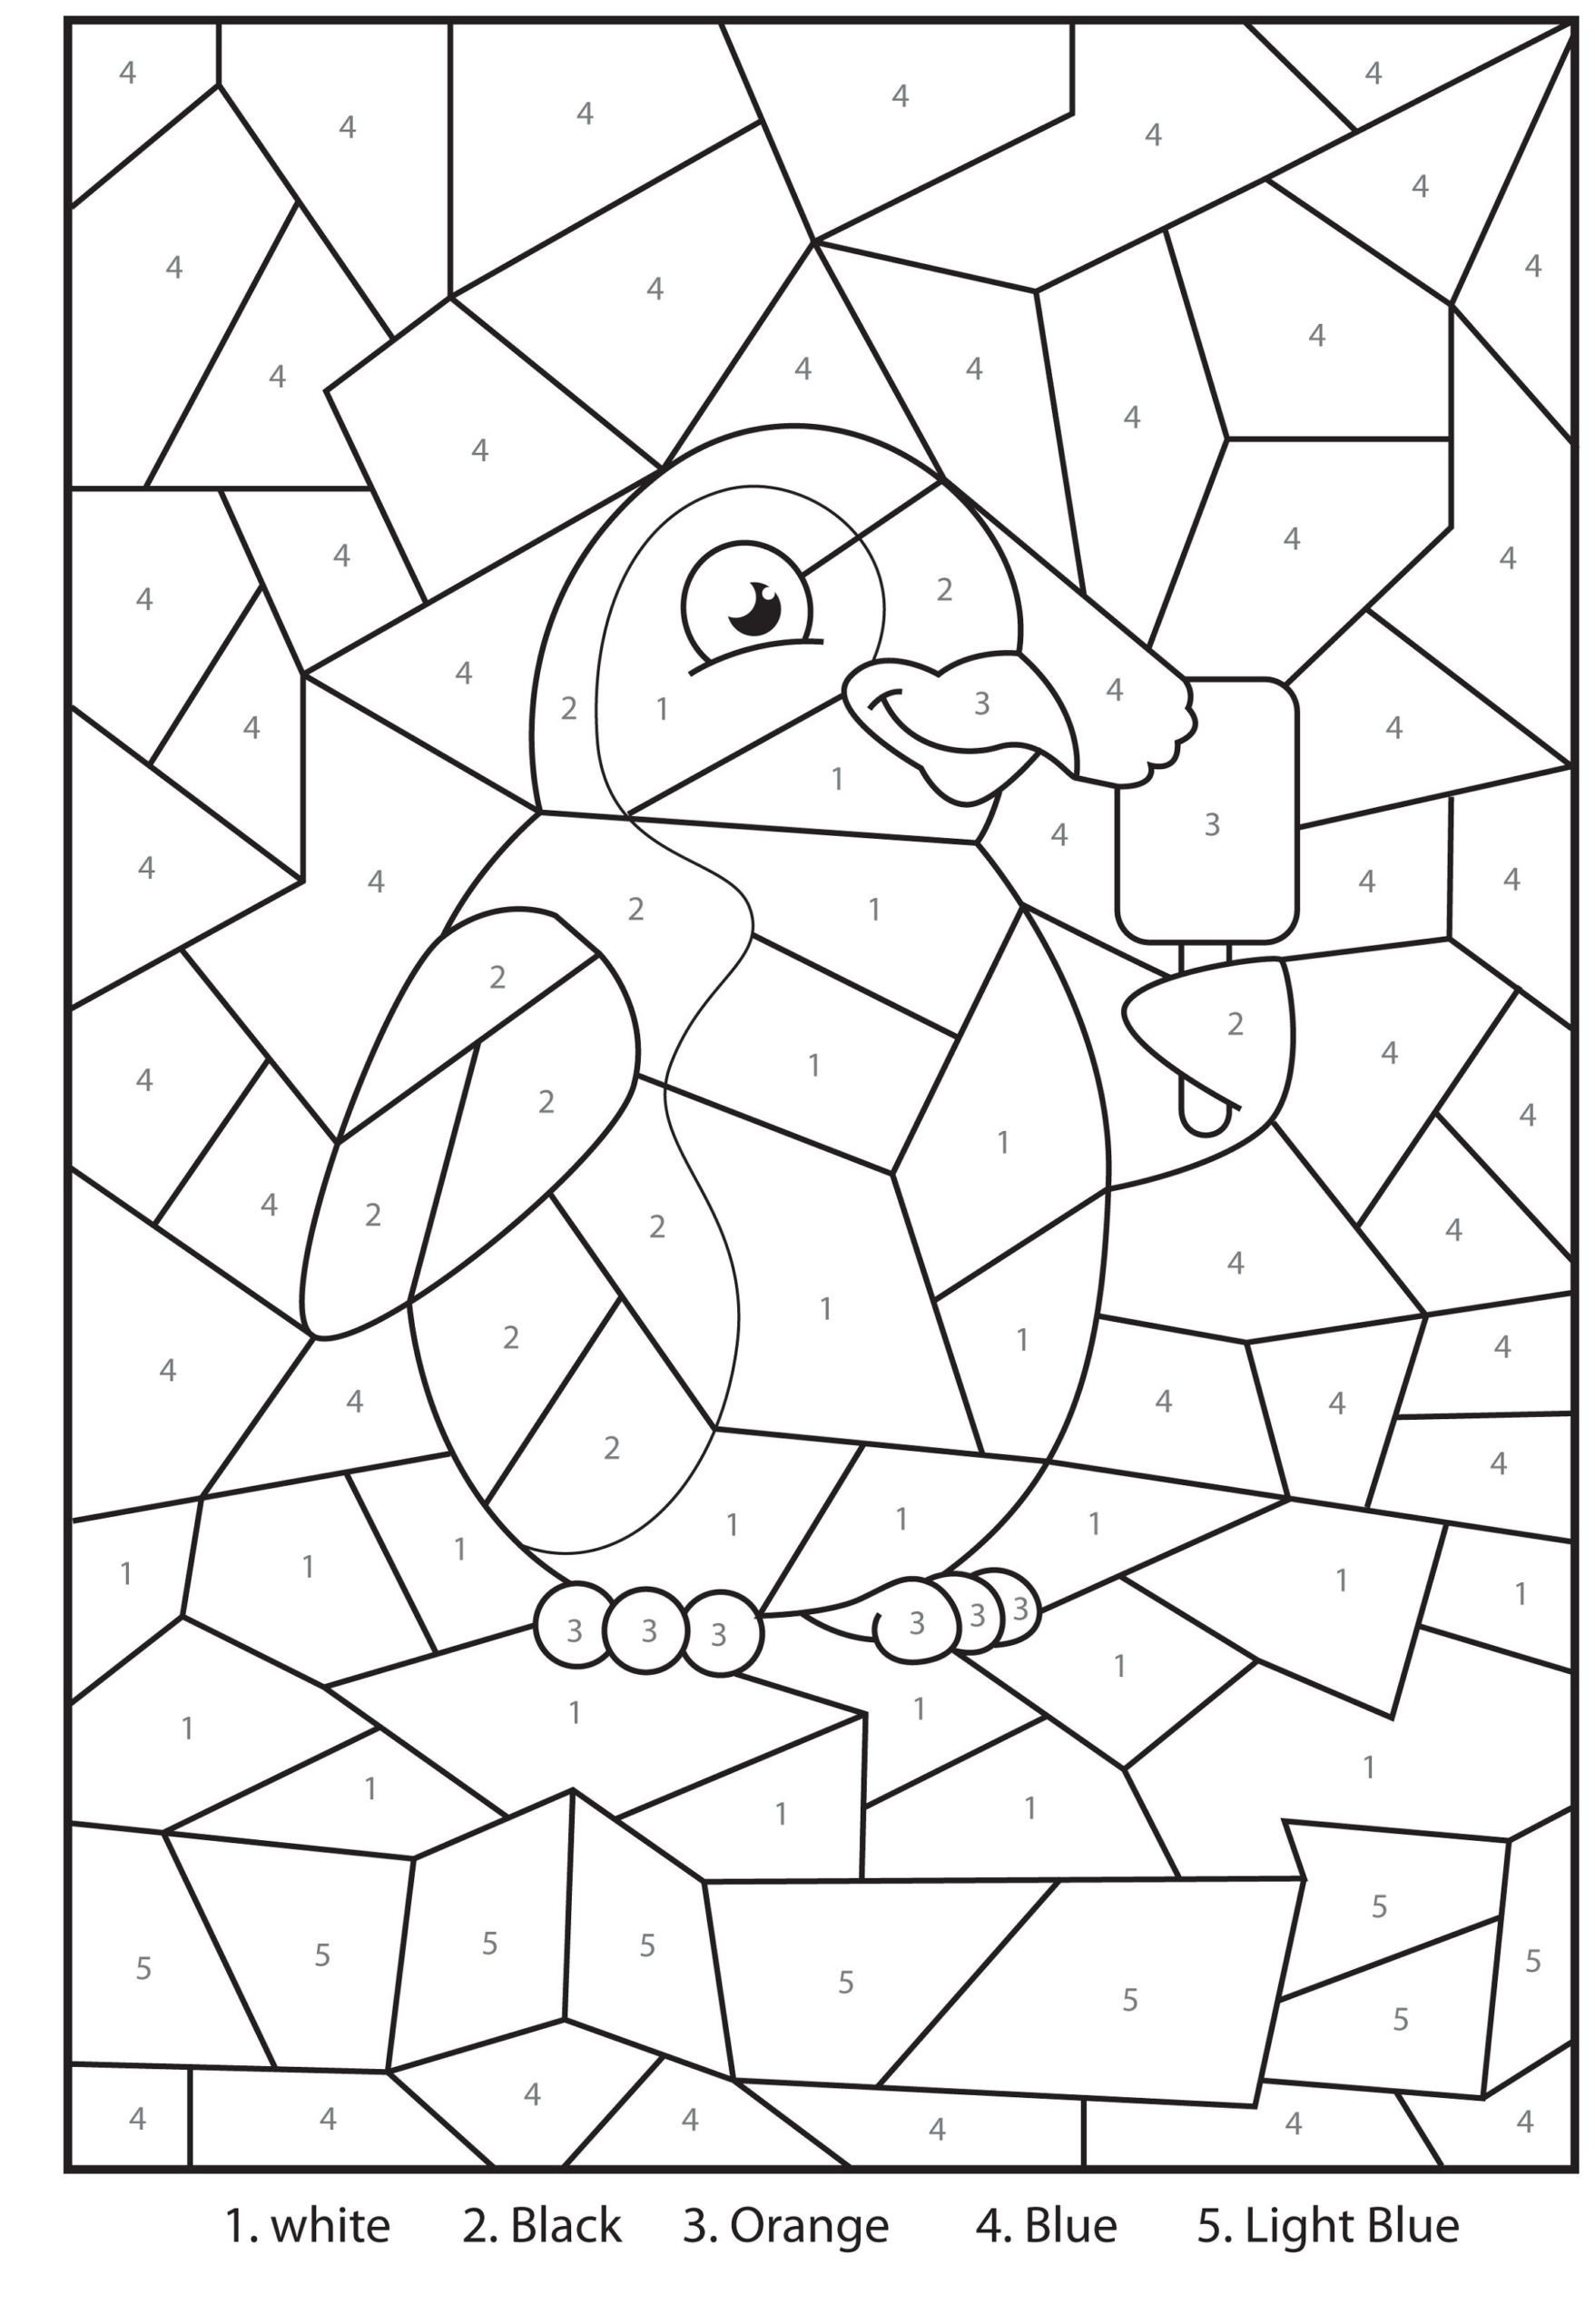 Color by Number Equations Worksheets Color by Number Worksheets Coloring Numbers for